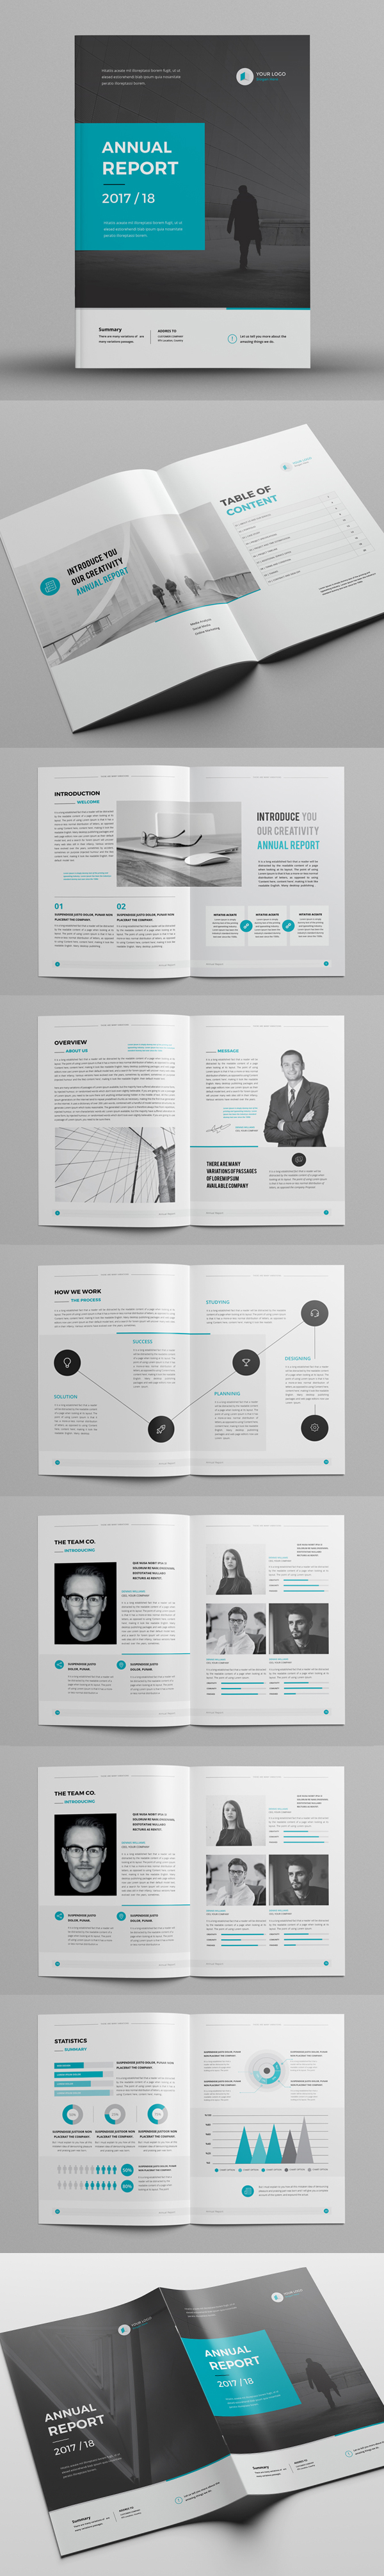 This InDesign Brochure Annual Report